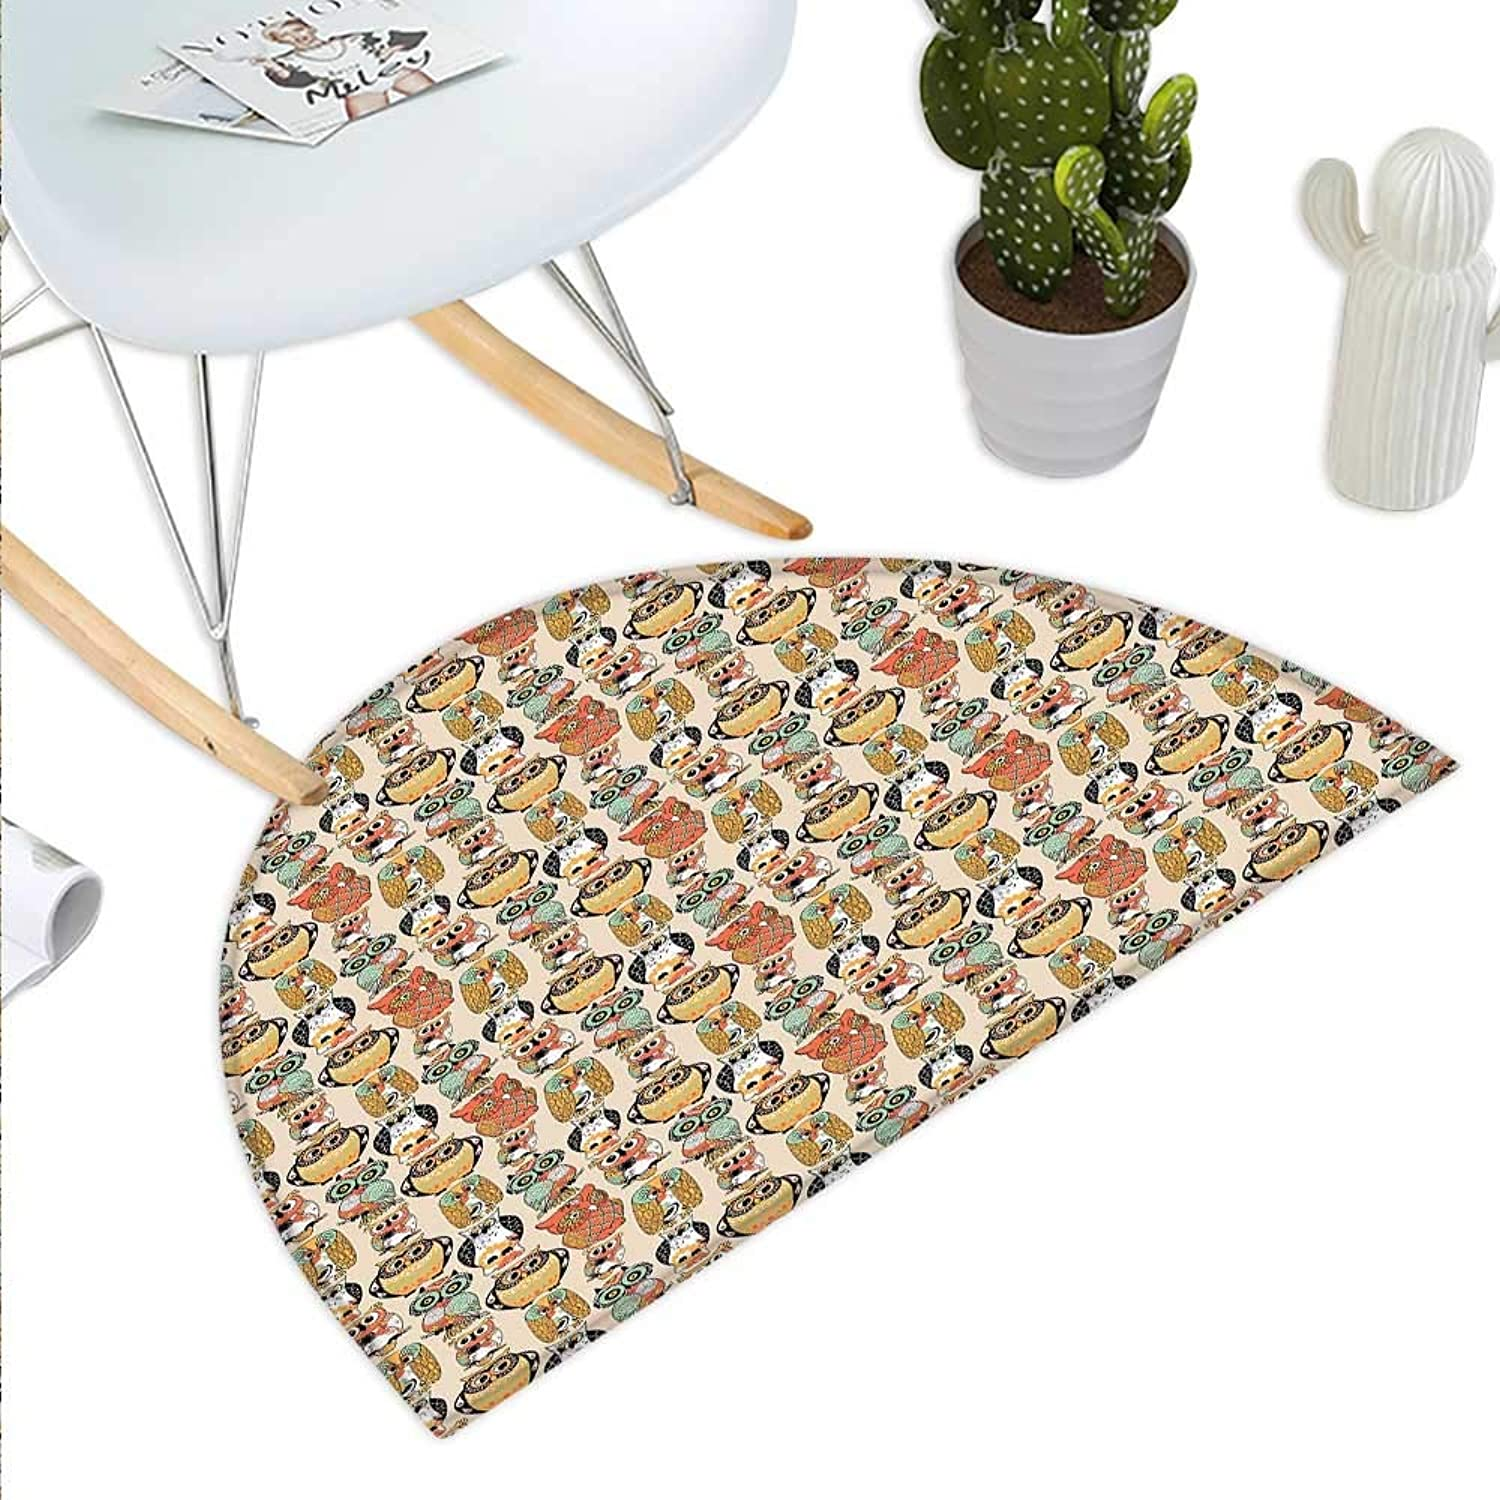 Owls Semicircle Doormat Artistic Forest Animals with Ornamental Rich Details Floral and Geometric Vintage Halfmoon doormats H 35.4  xD 53.1  Multicolor